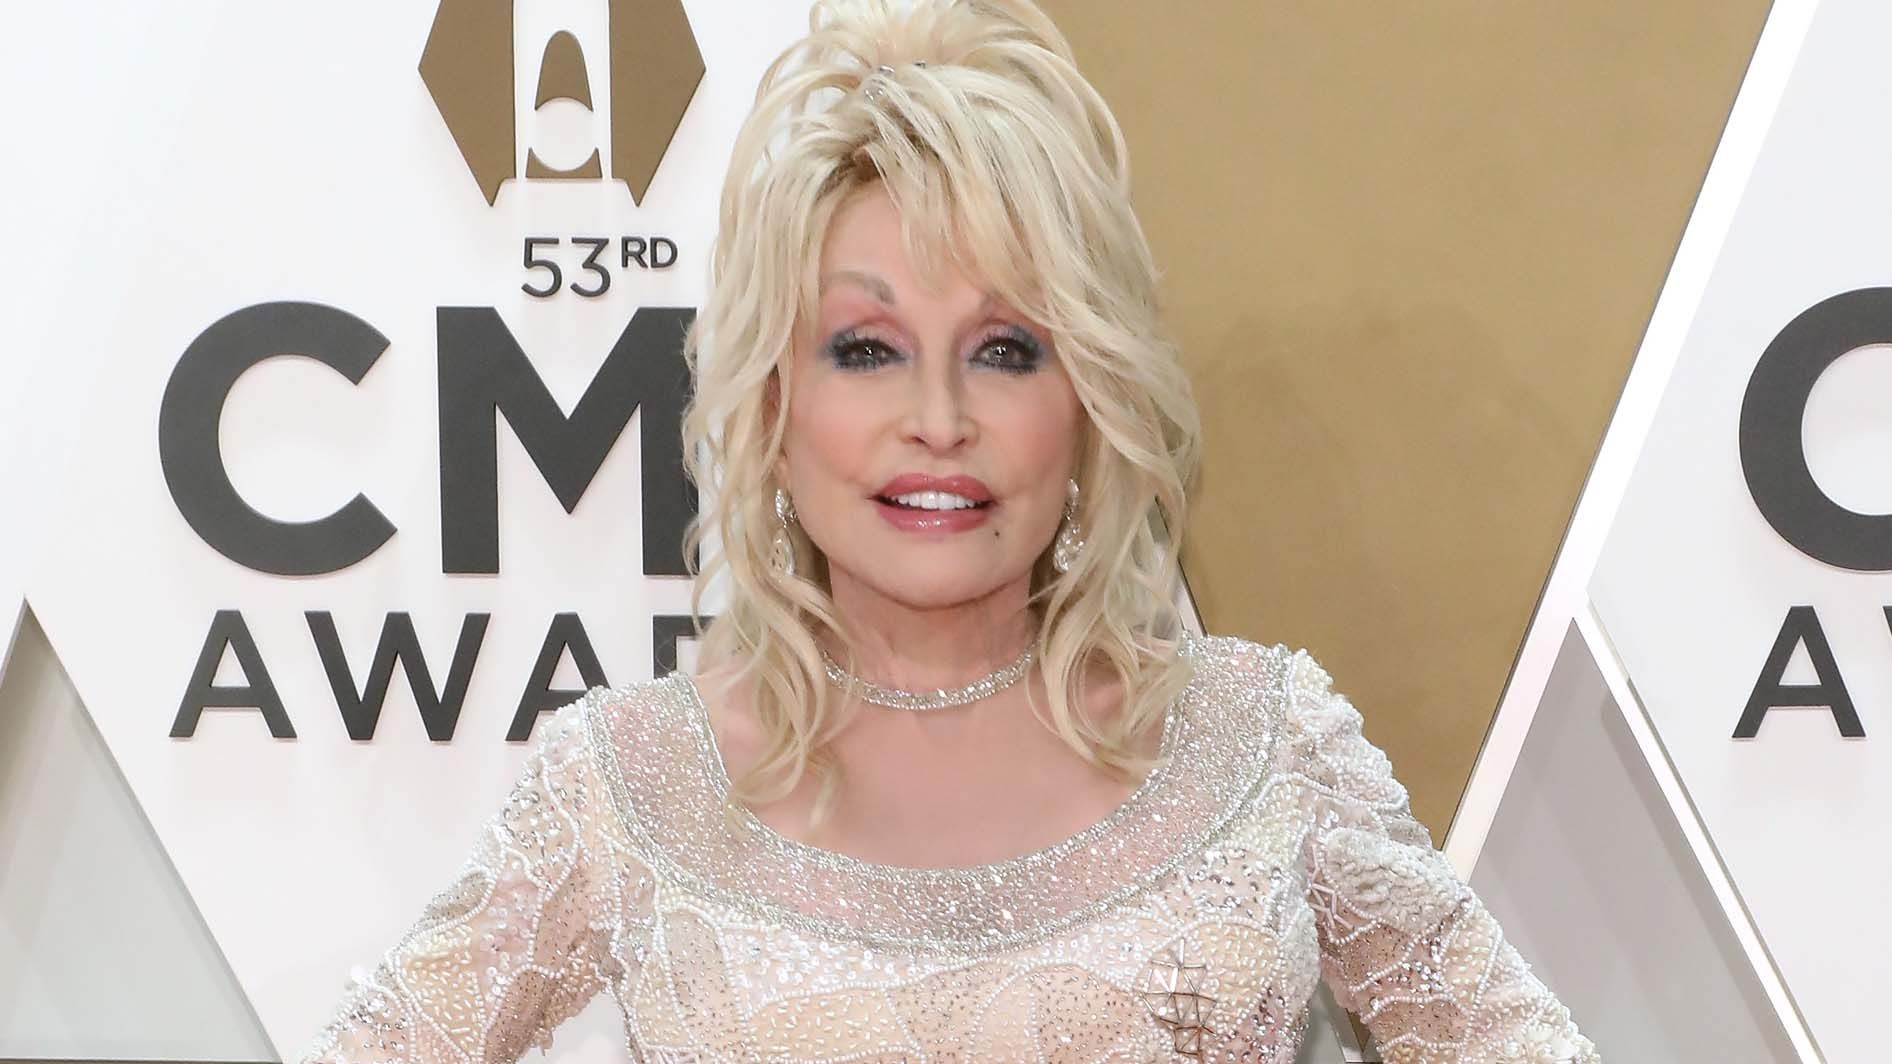 Dolly Parton is bringing some holiday joy early with her